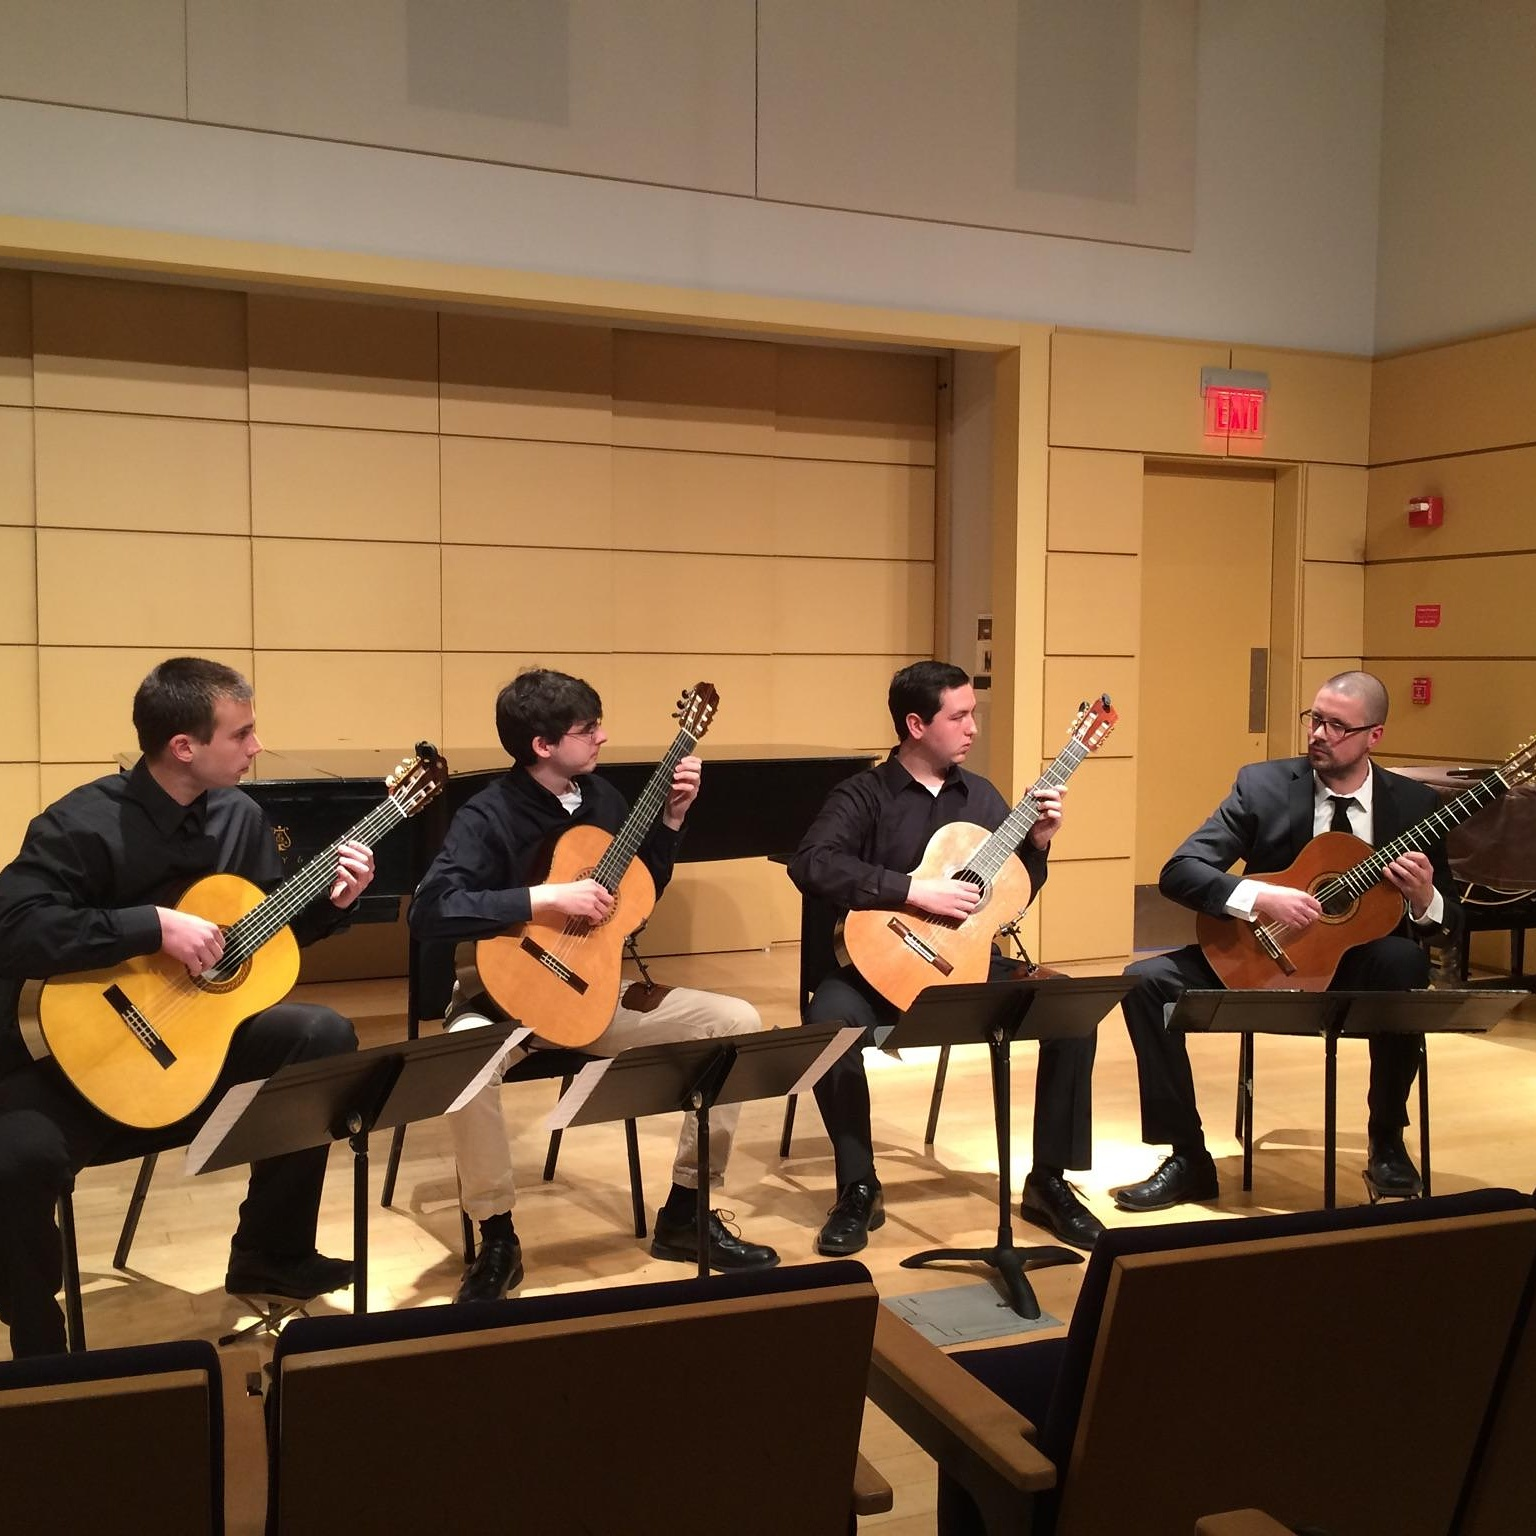 Nate Richards leading the WCU Classical Guitar Ensemble at a performance at West Chester University